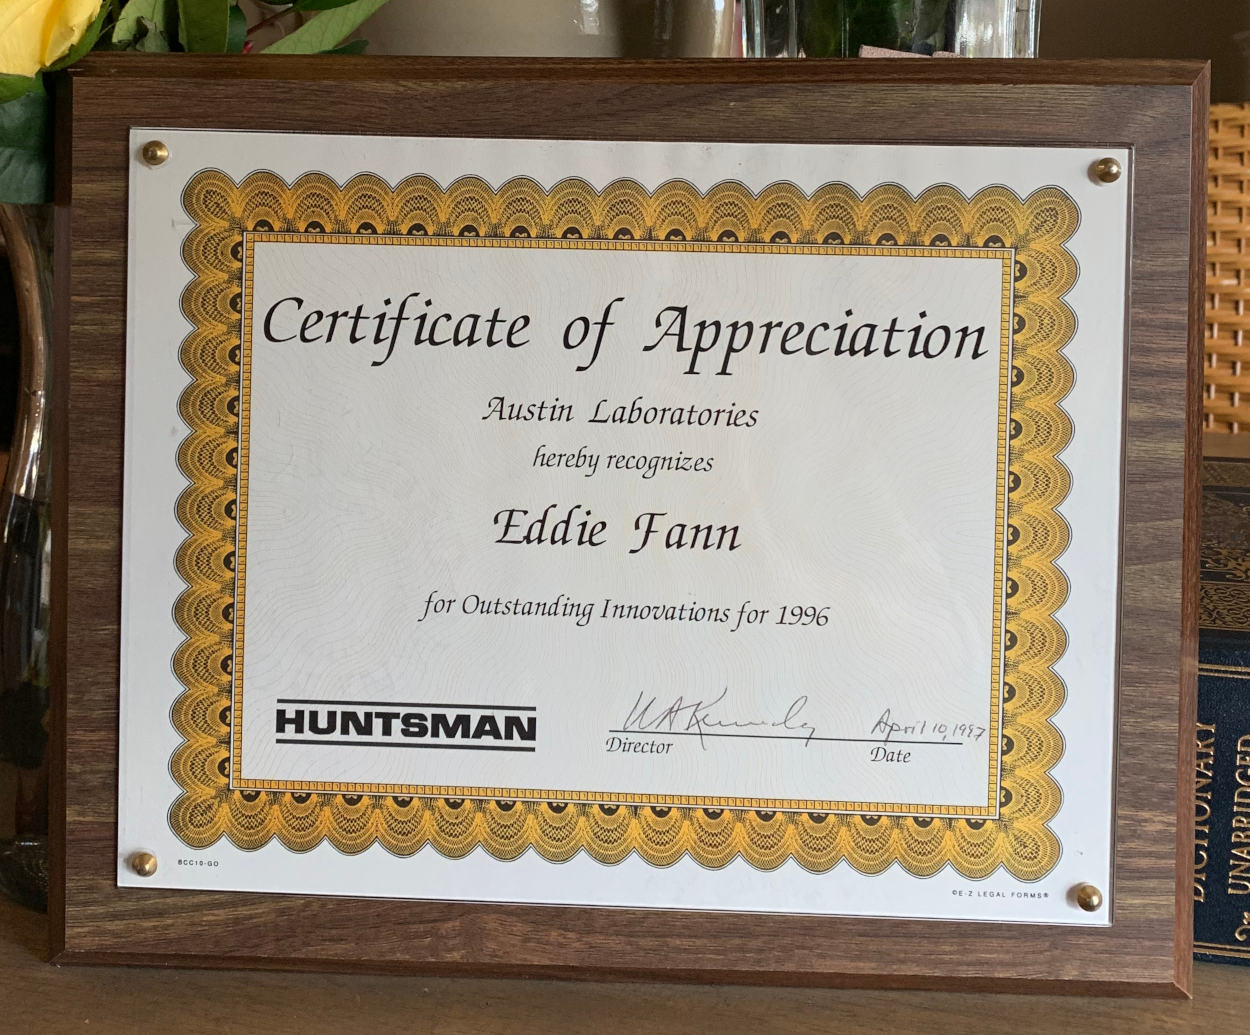 Huntsman Certificate of Appreciation